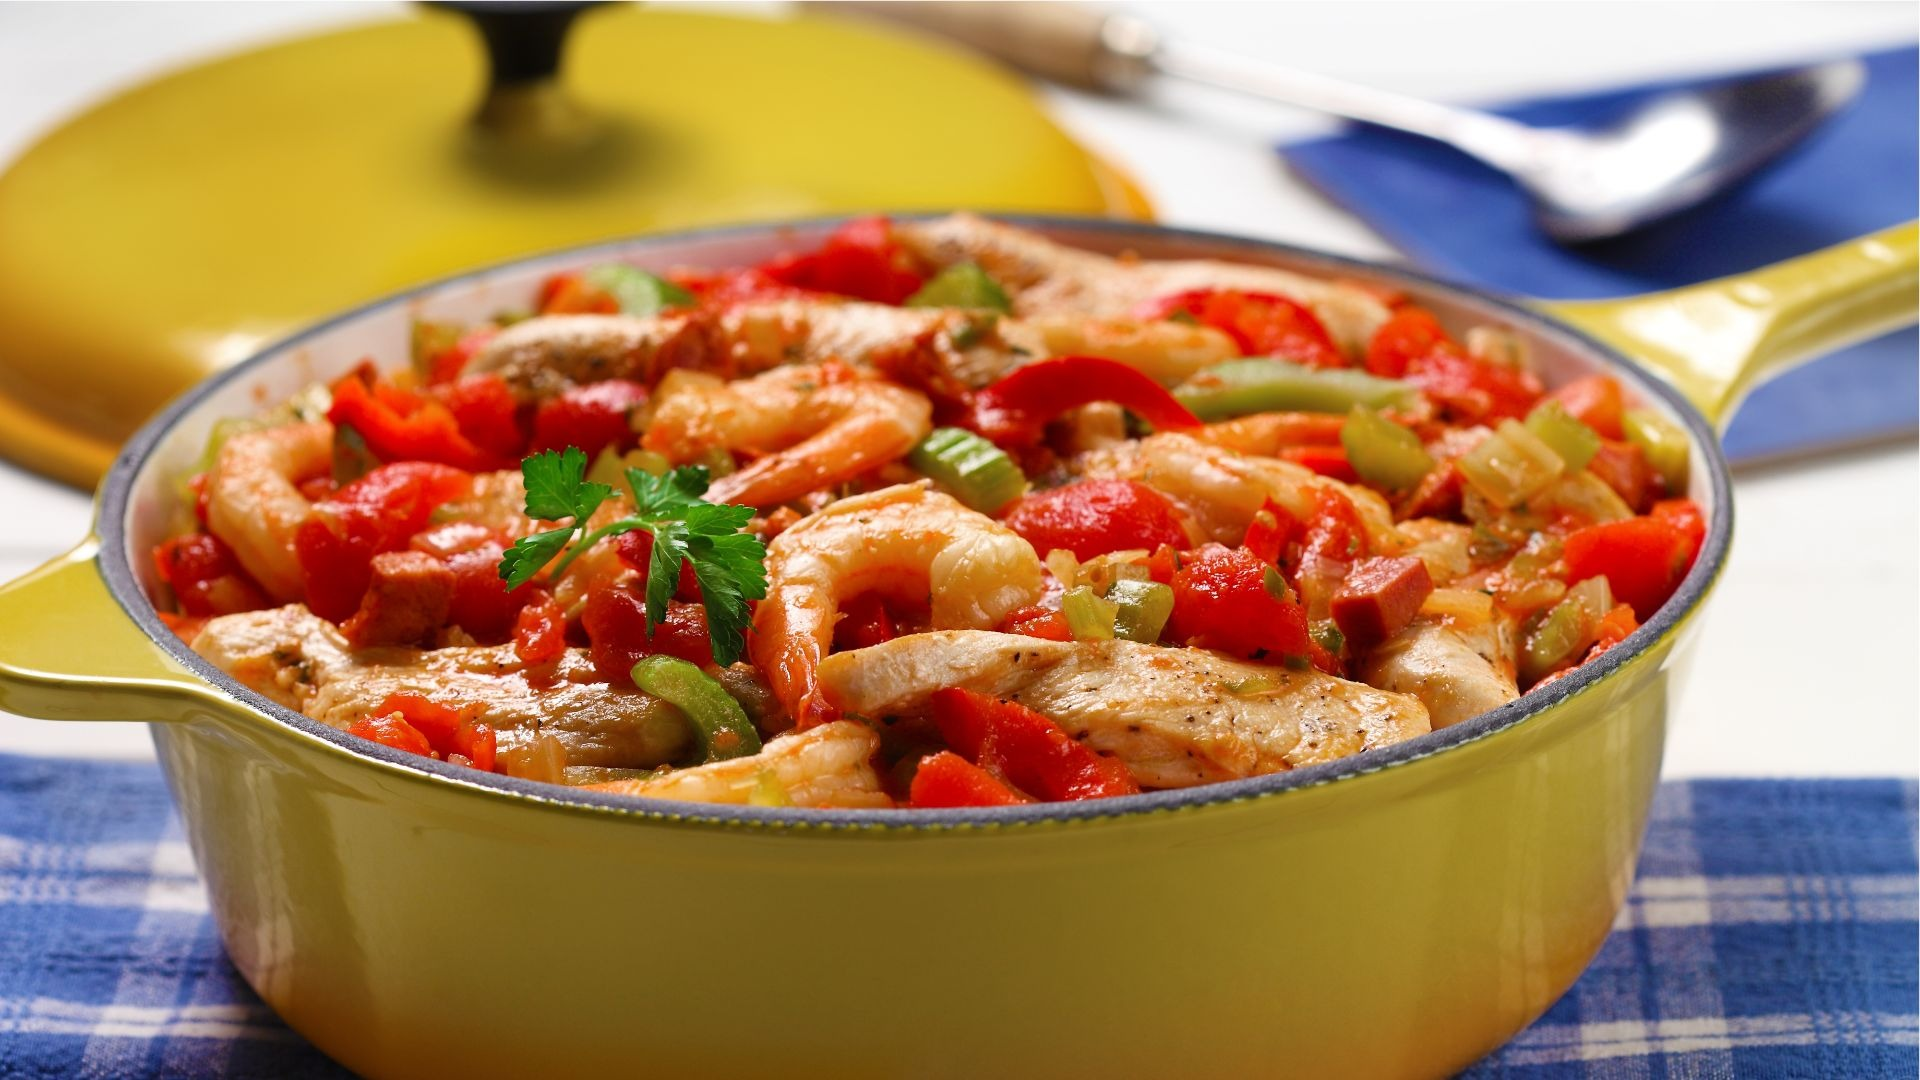 Casserole cooked shrimp, peppers, chicken and celery